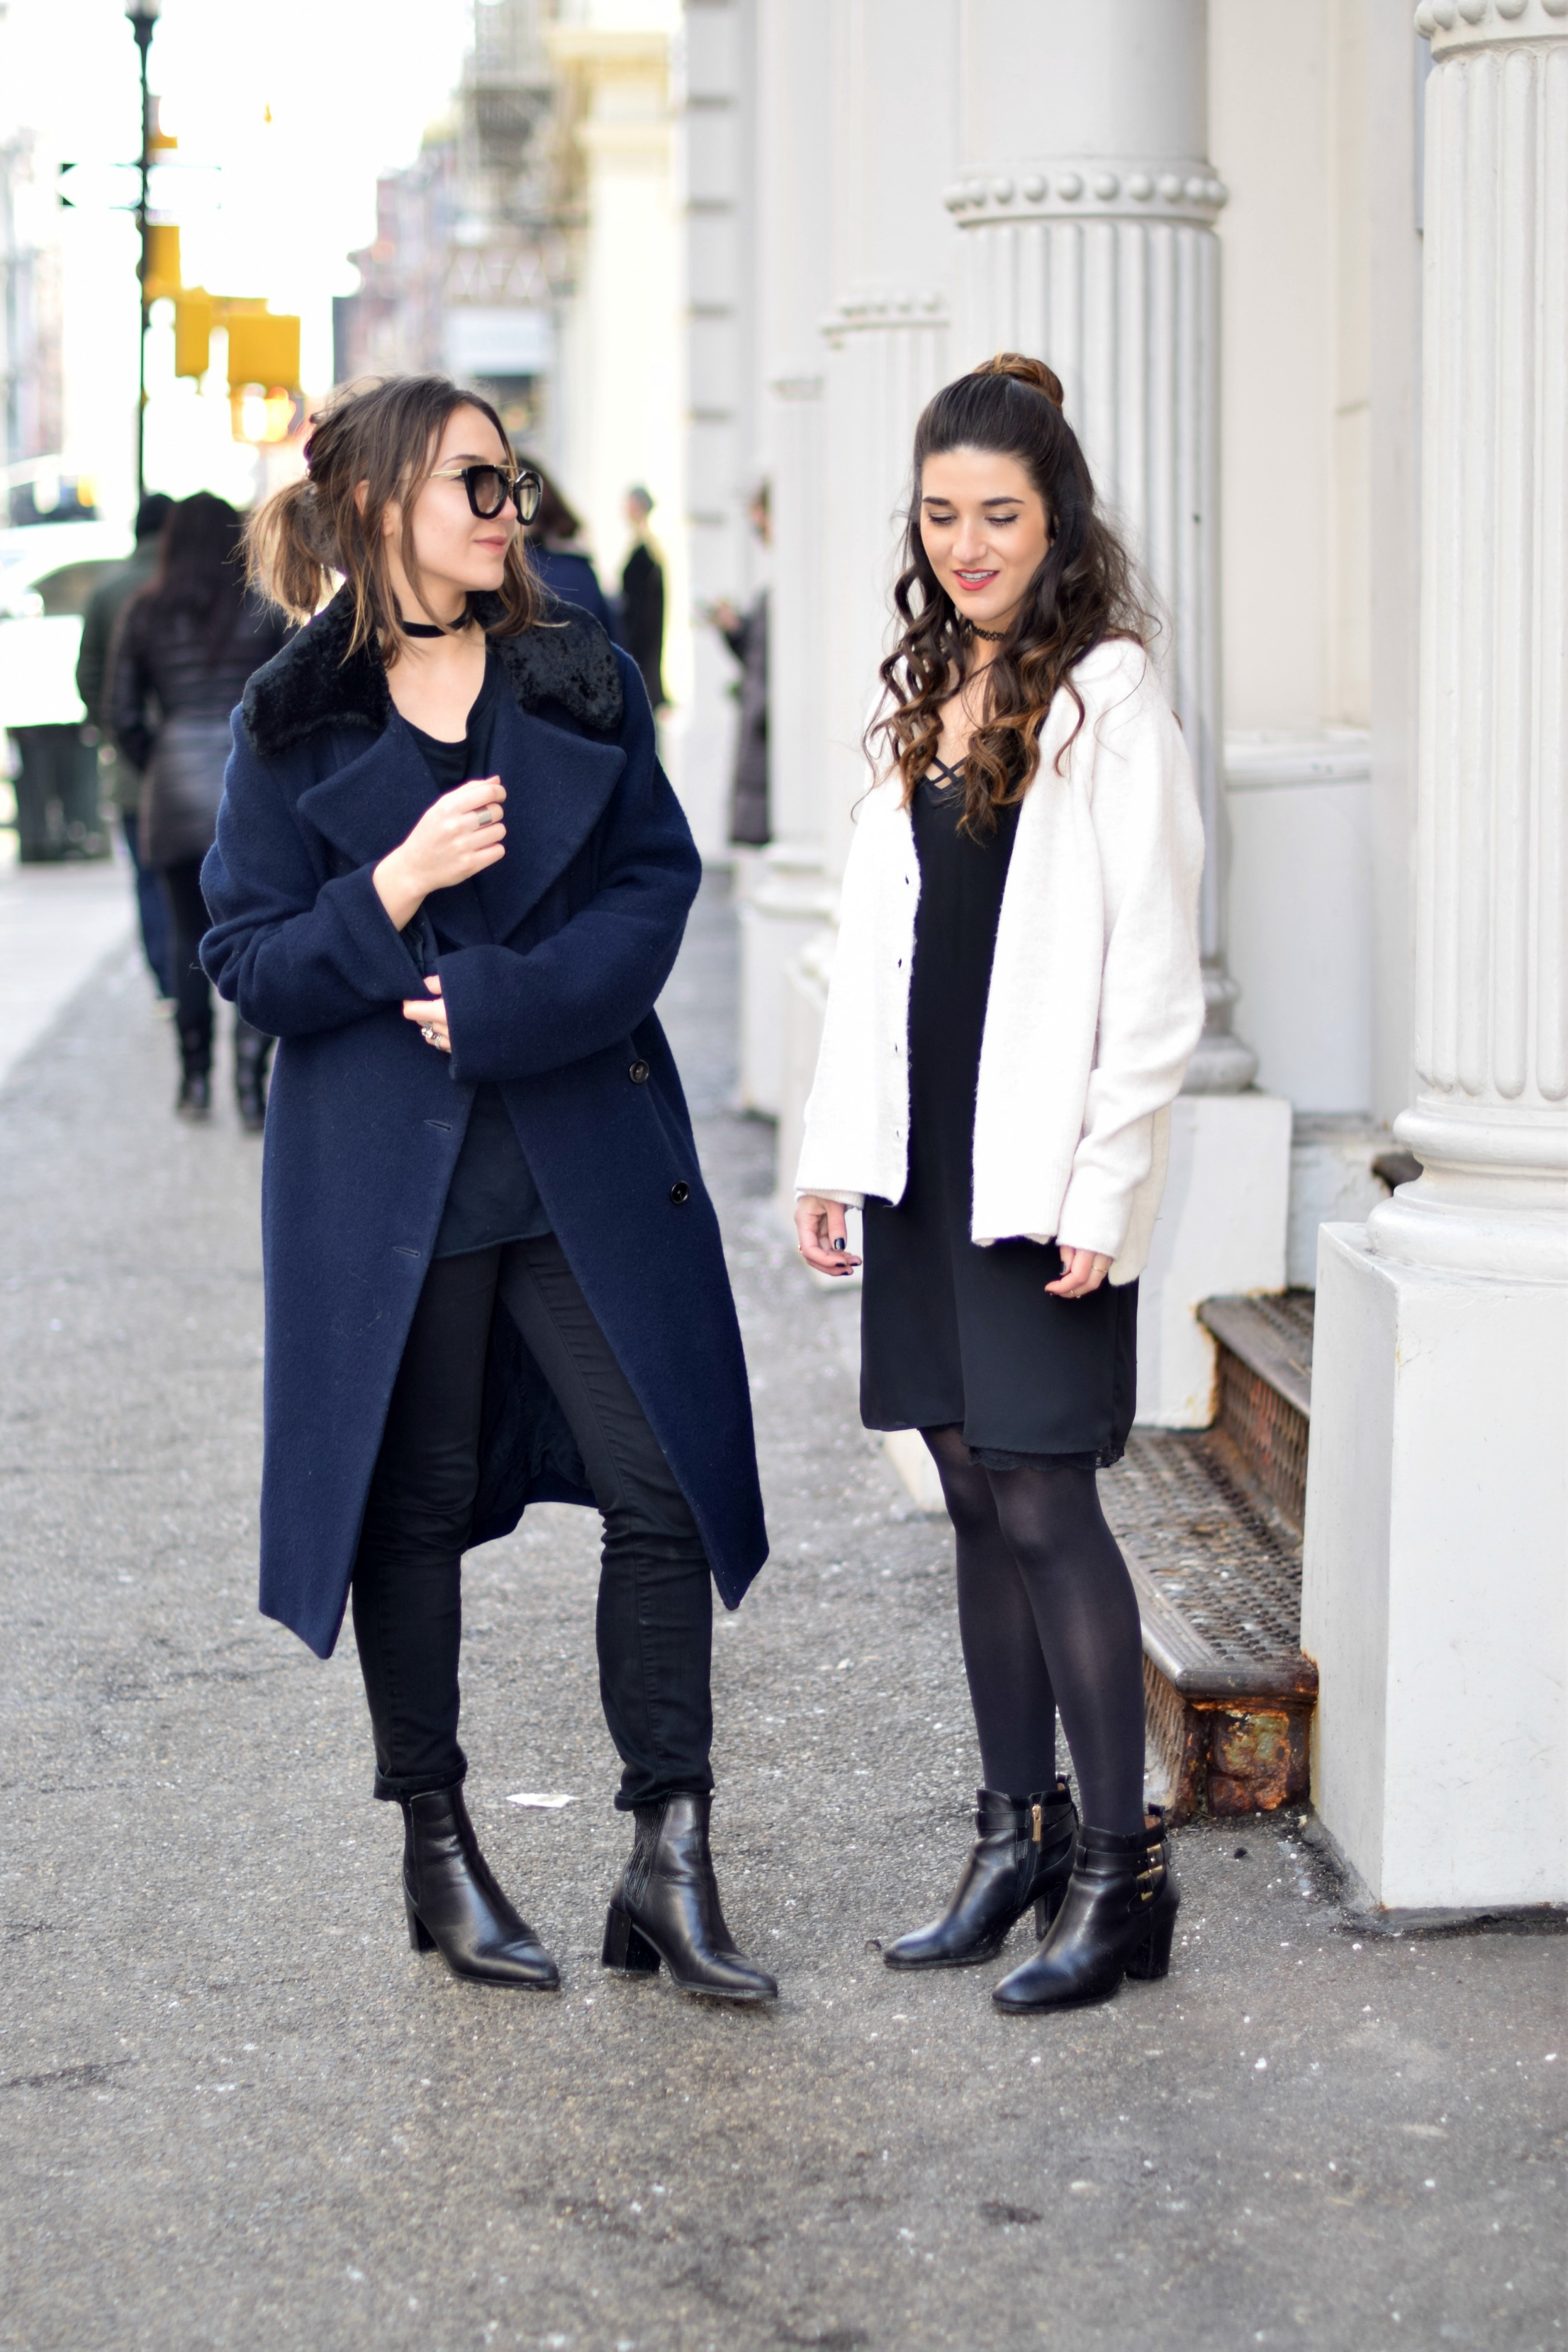 Black Lingerie Dress White Sweater Louboutins & Love Fashion Blog Esther Santer NYC Street Style Outfit OOTD Inspo Bralette Brandy Melville Photoshoot Model Girl Women Brunch Coffee Latte Art Sunglasses Winter Shoes Booties Tights Chunky Knits Choker.jpg